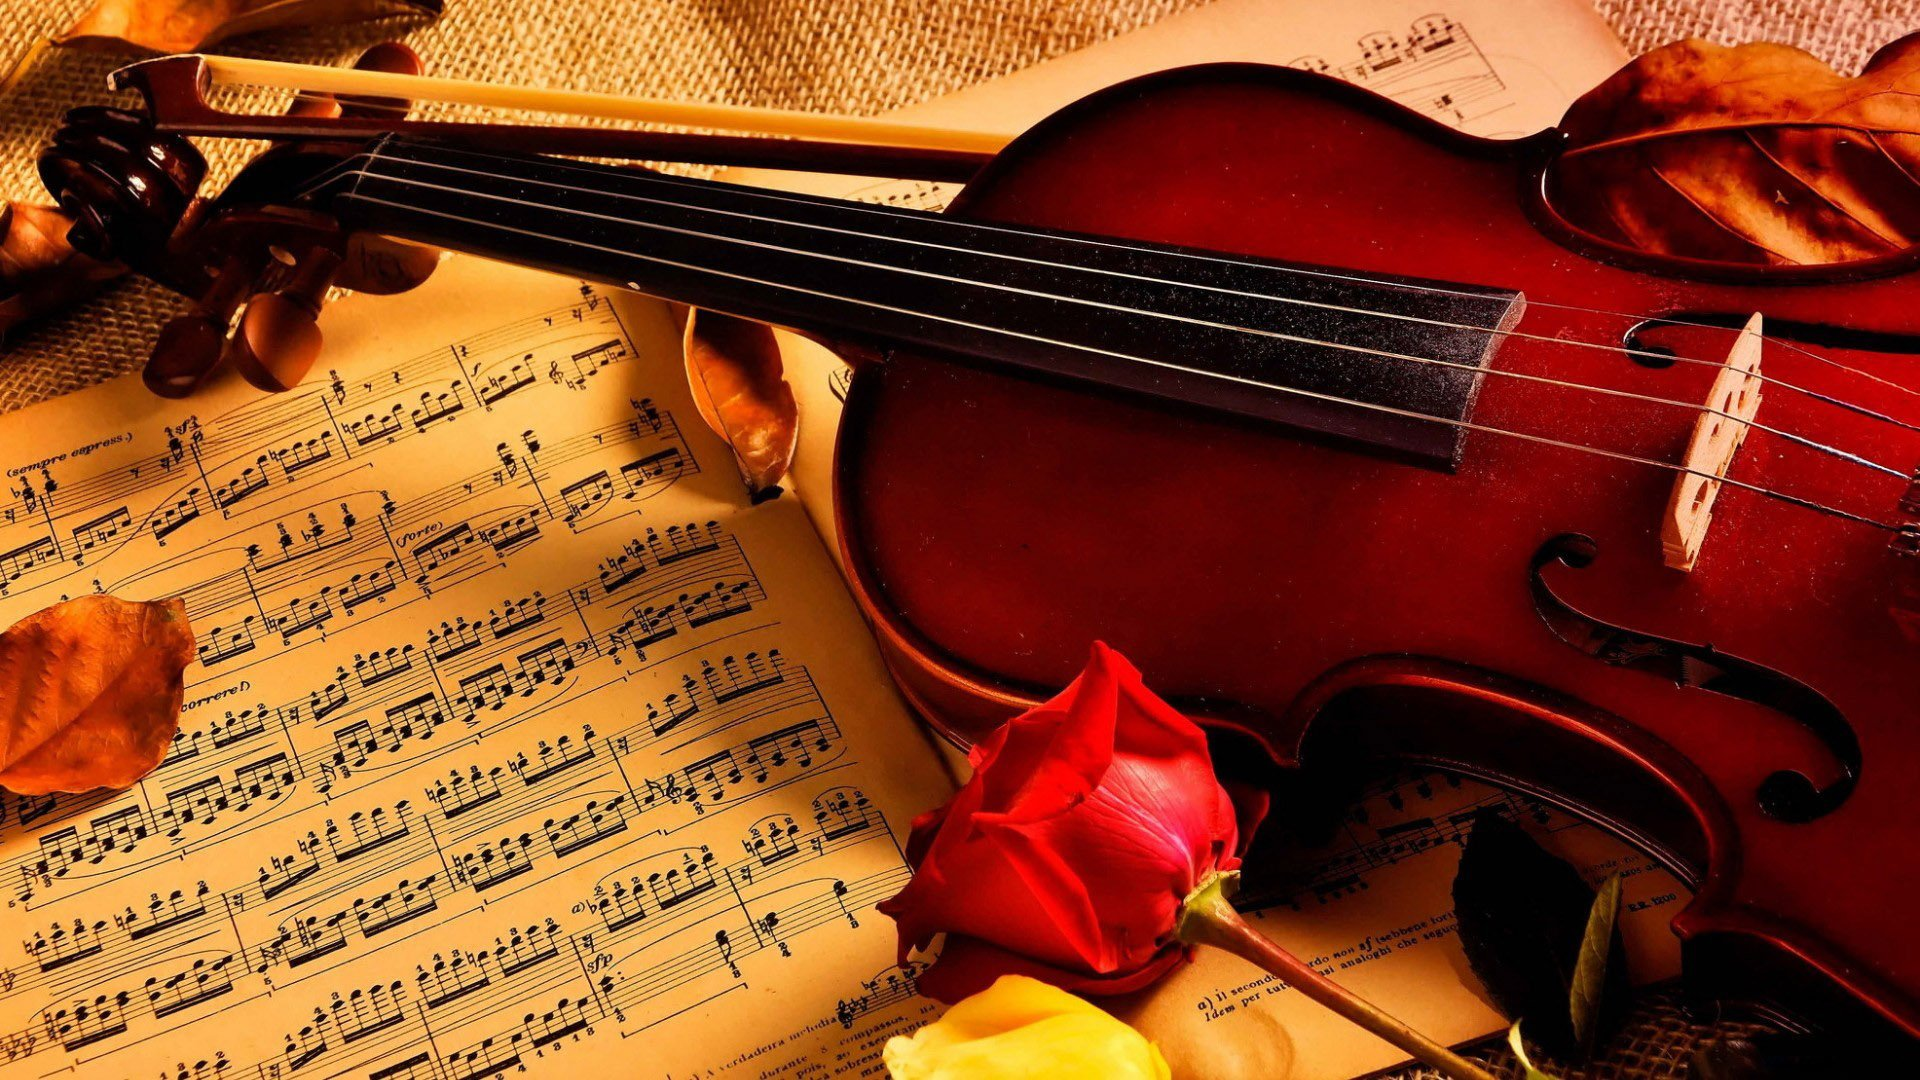 sheet music wallpaper hd 1080p - photo #42